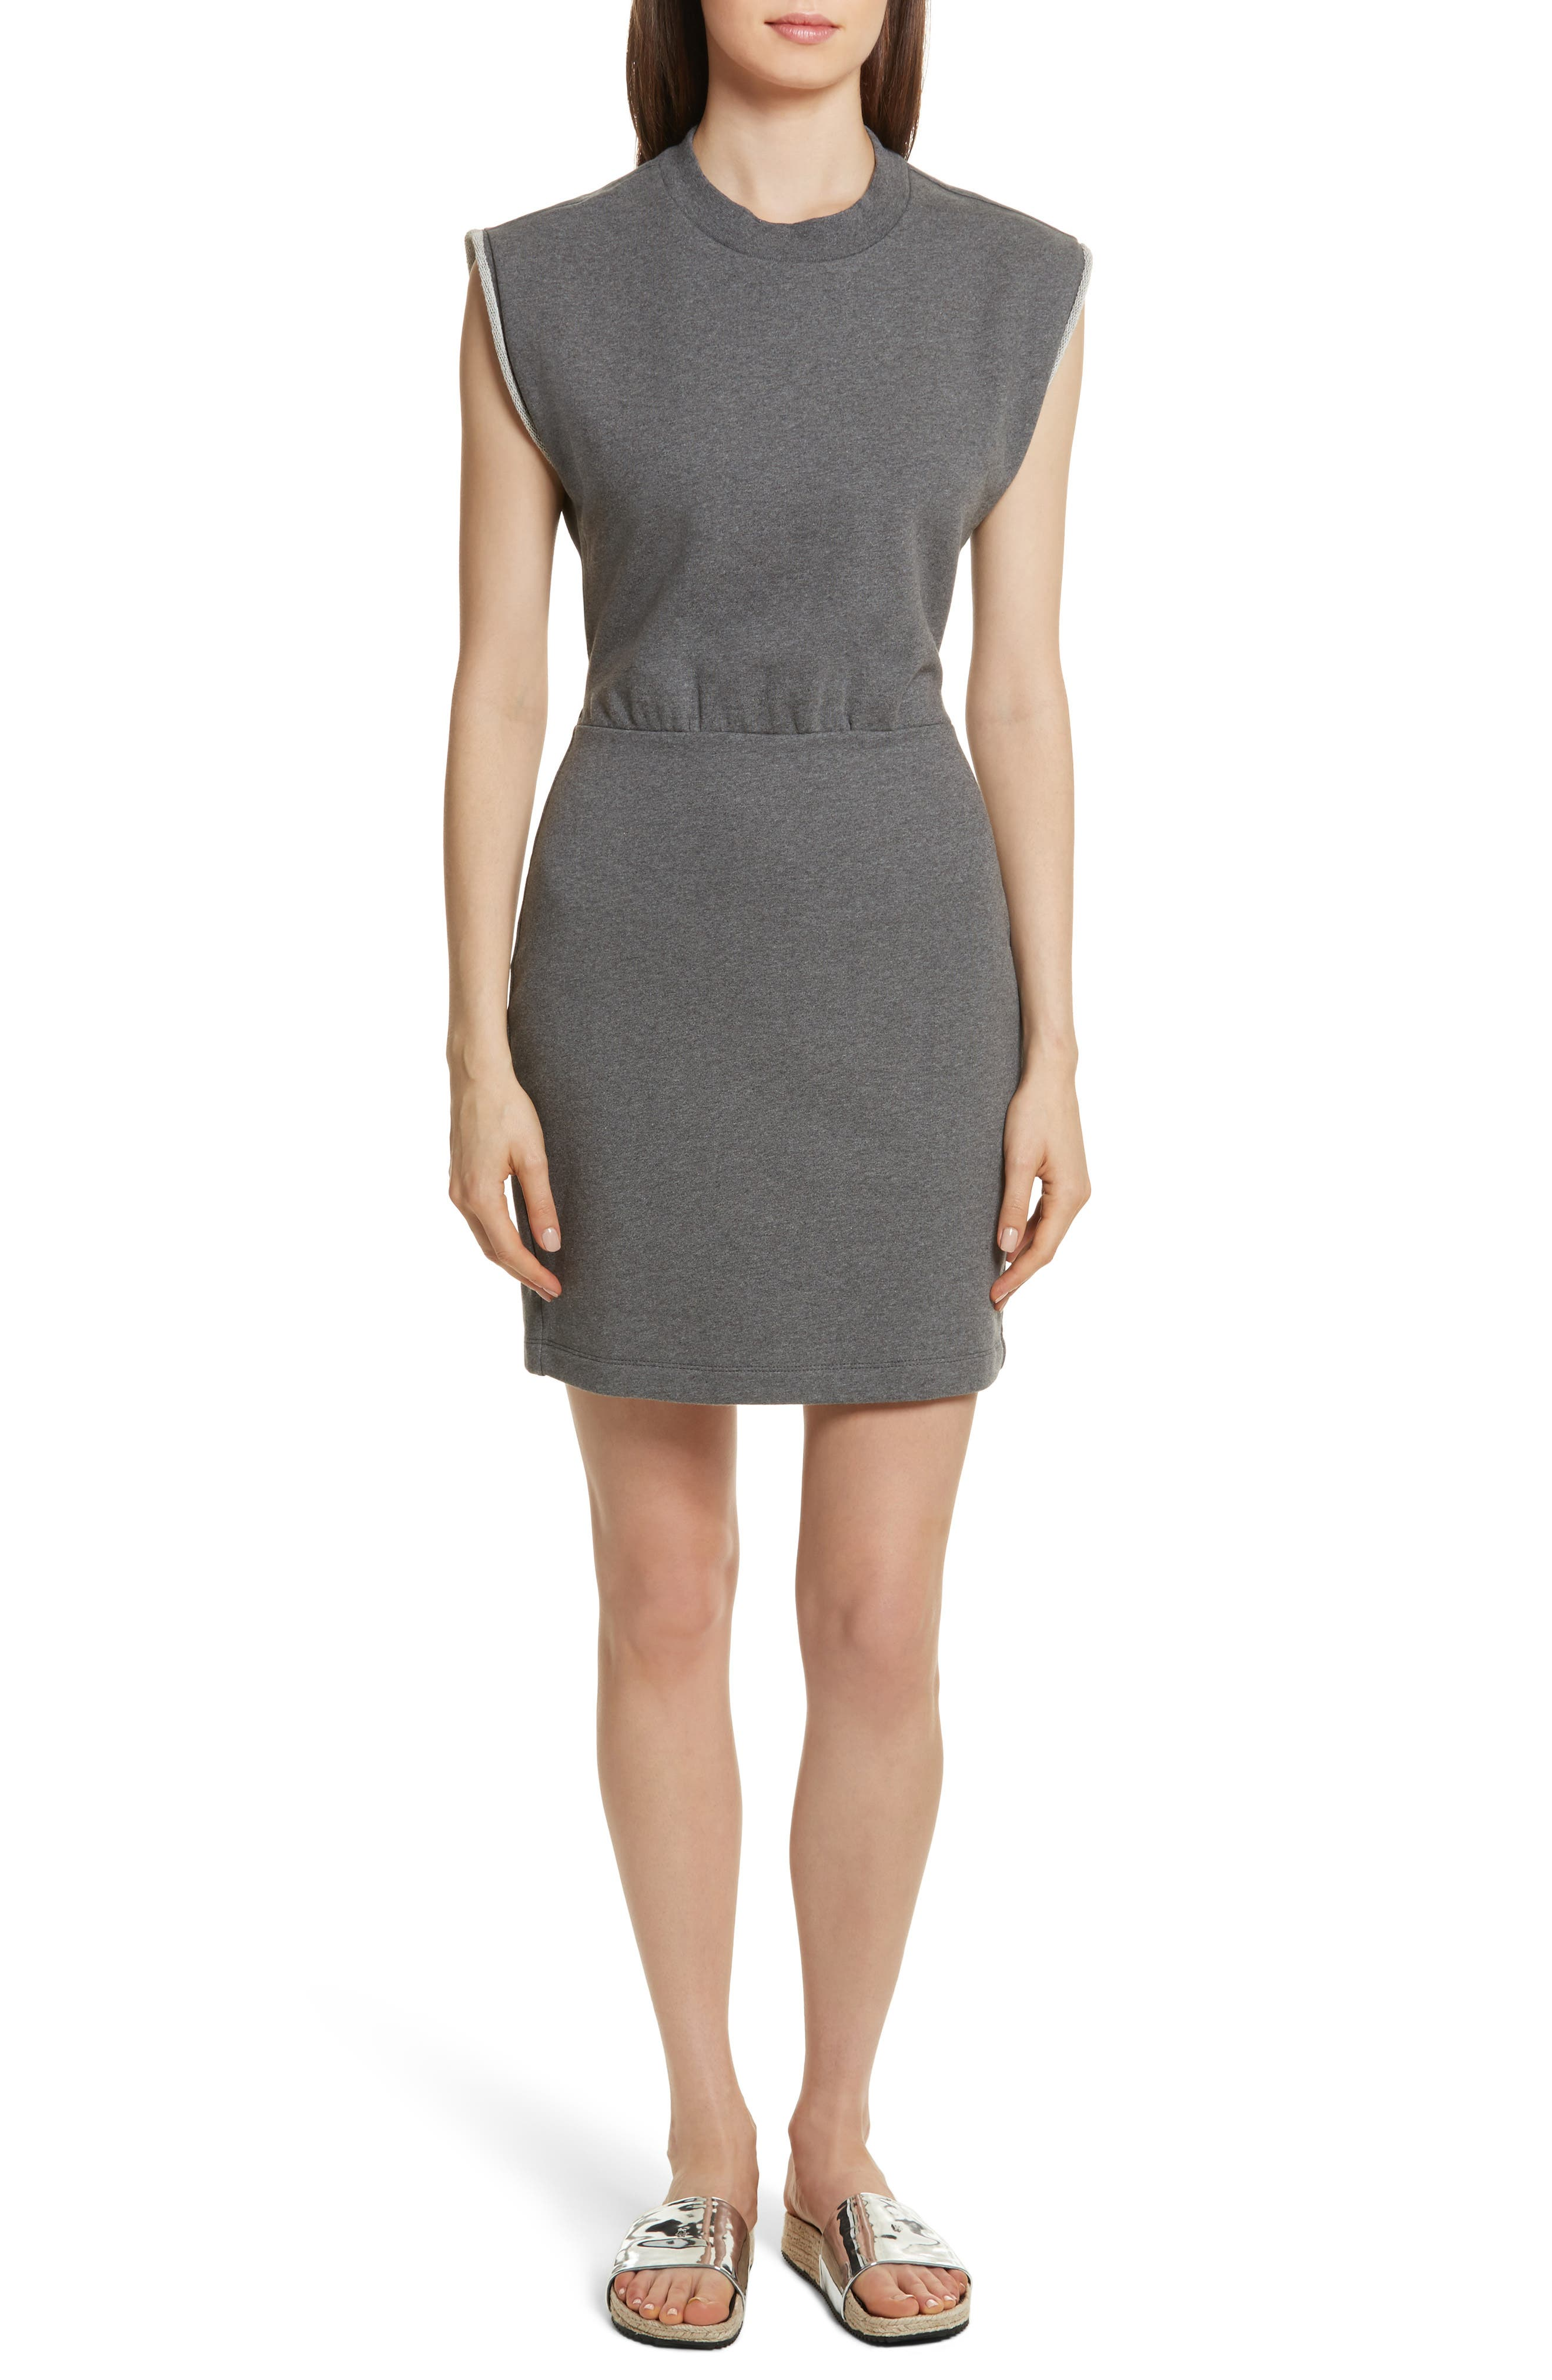 French Terry Dress,                         Main,                         color, 020